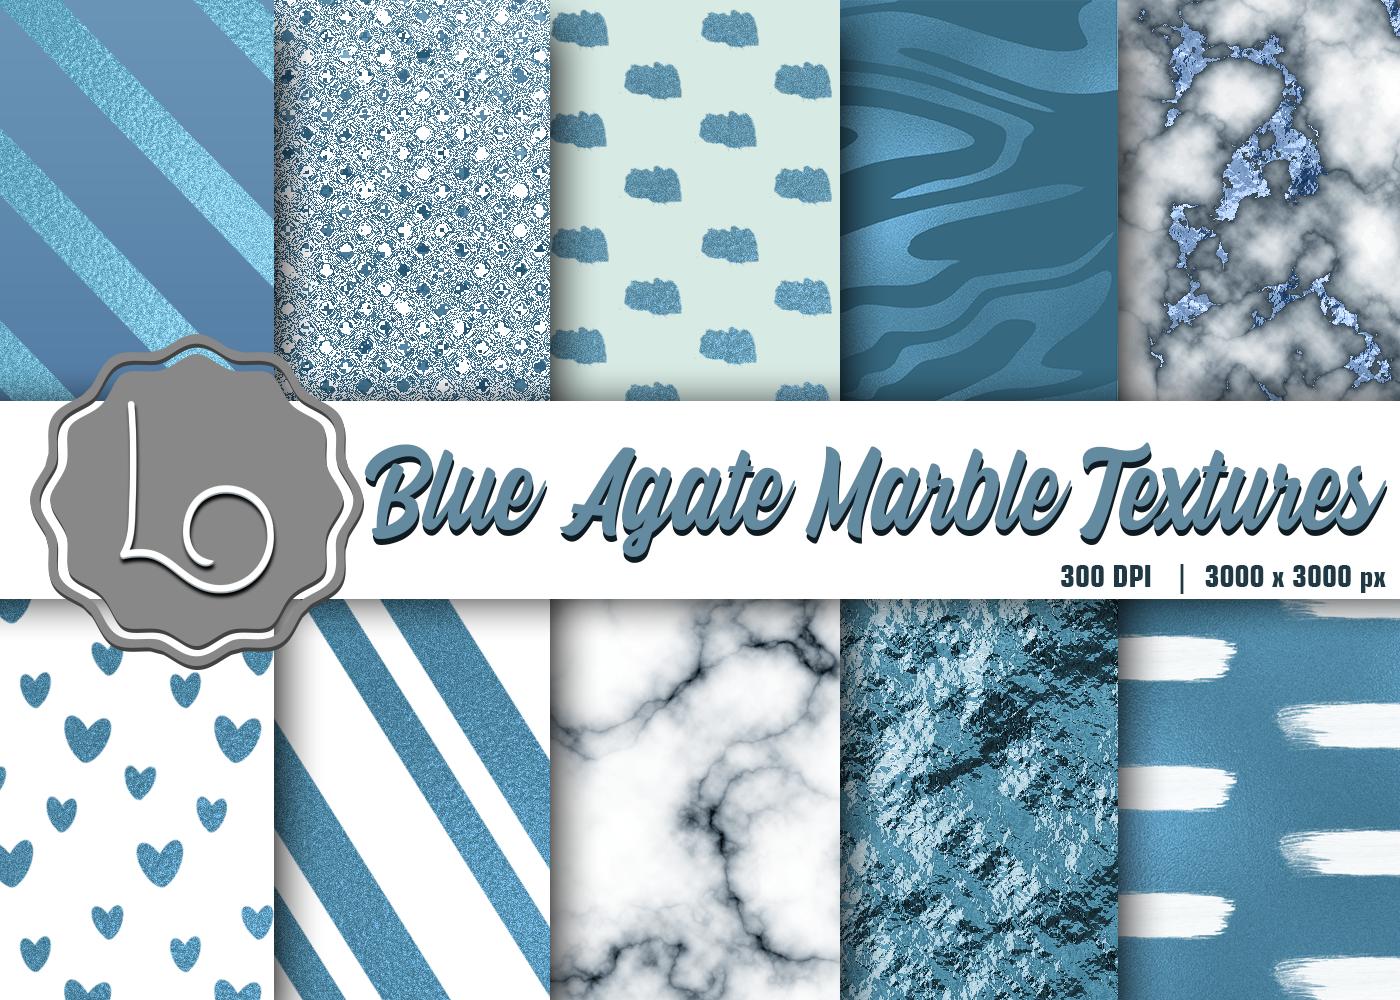 Blue Agate Marble Textures Graphic By La Oliveira Creative Fabrica